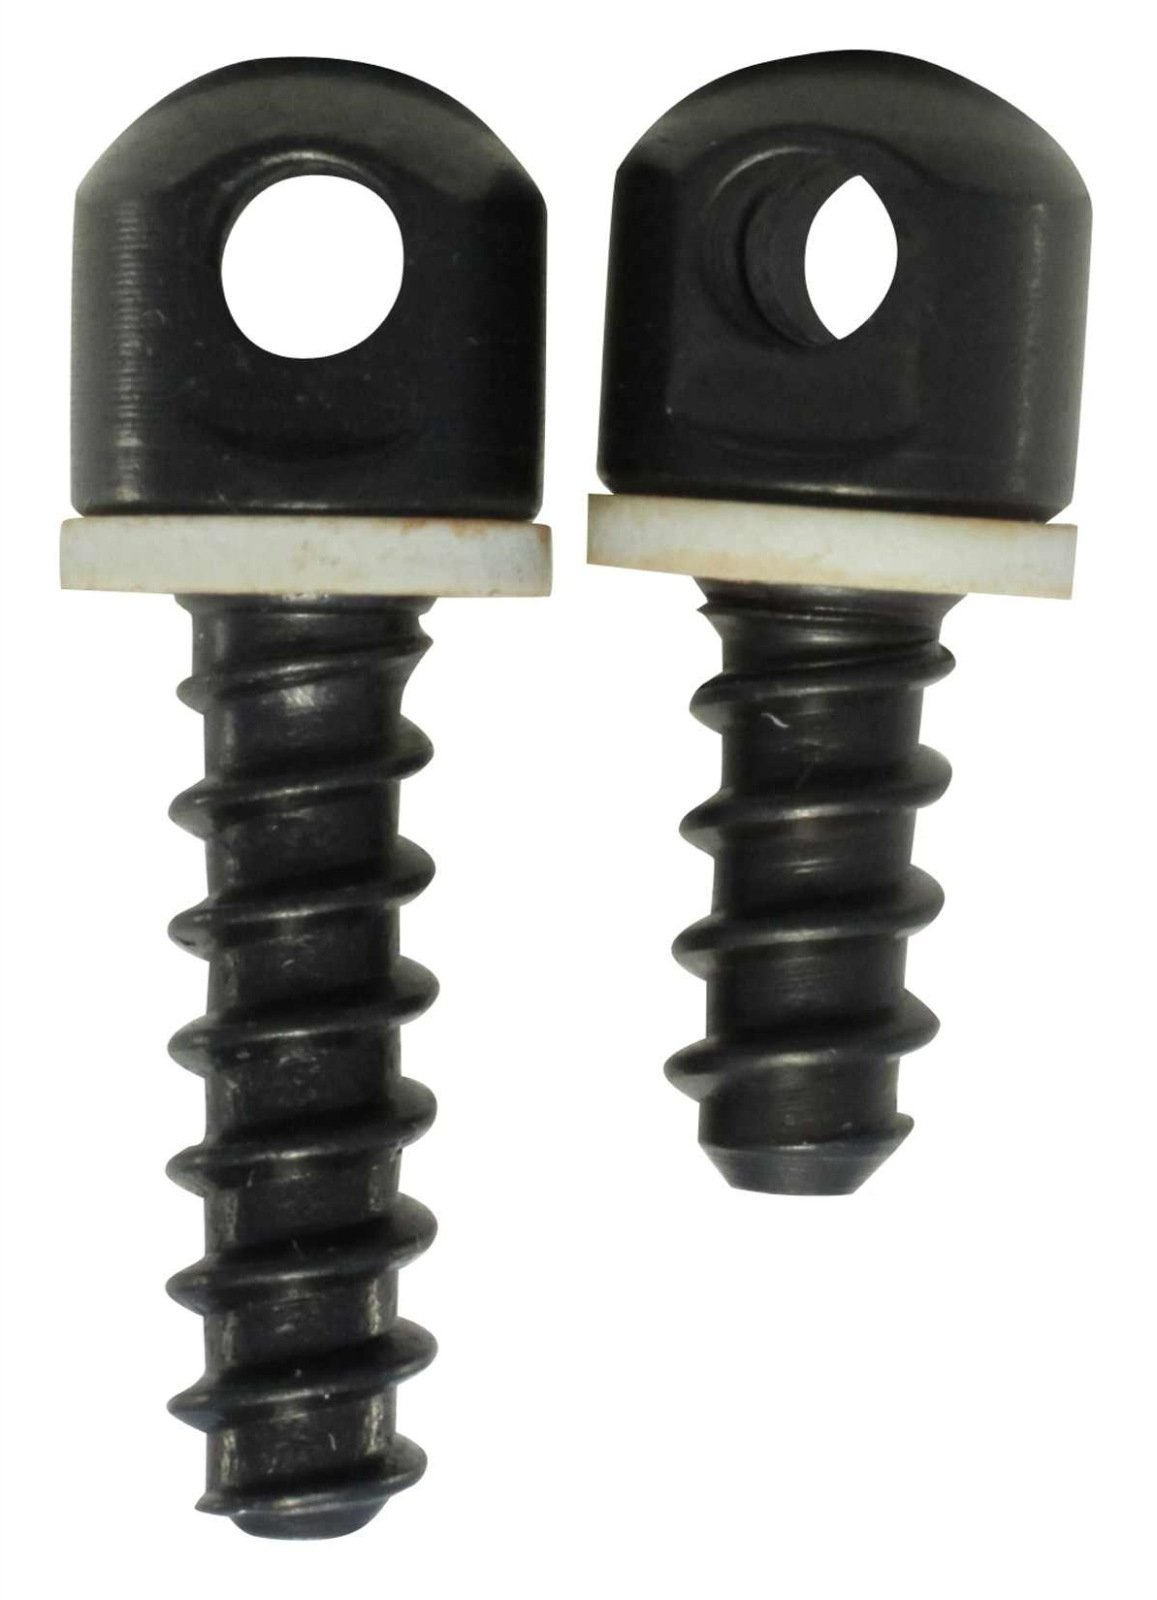 Ultimate Arms Gear Two QD 1'' Inch Slot Loop Wood Screws Studs Type Swivels with Spacers + Two-Point Sling, Black AR15, AR-15, M4, M-4, M16, M-16 .223 5.56 556 .308 by Ultimate Arms Gear (Image #4)